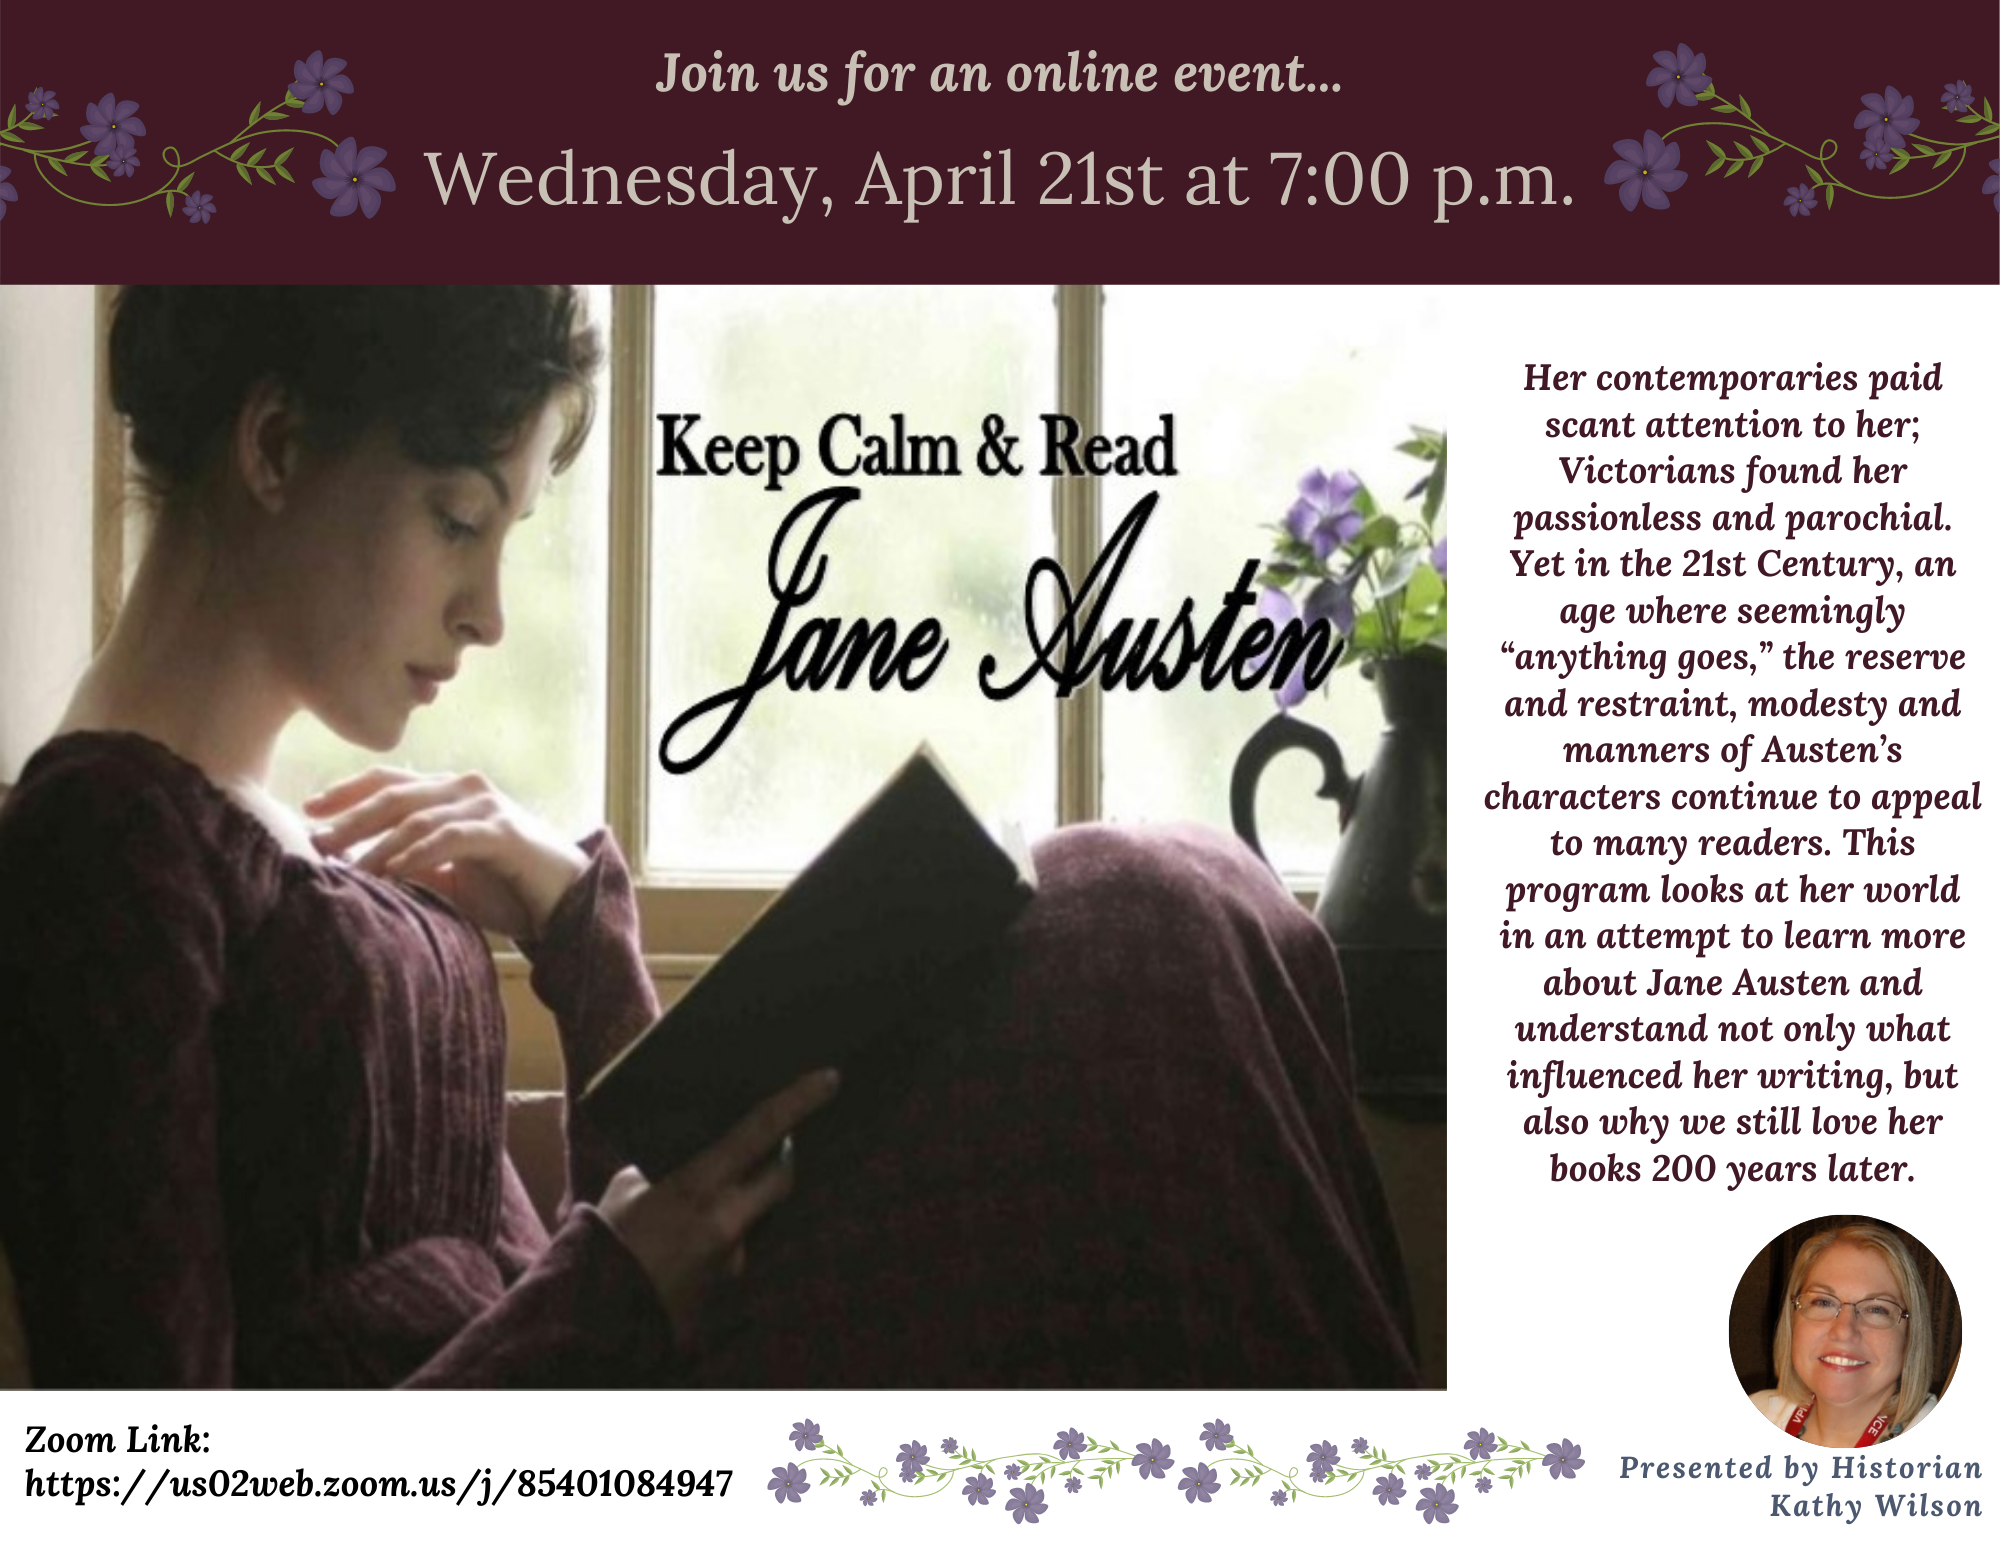 210421_Jane Austen_Shared Flyer.png